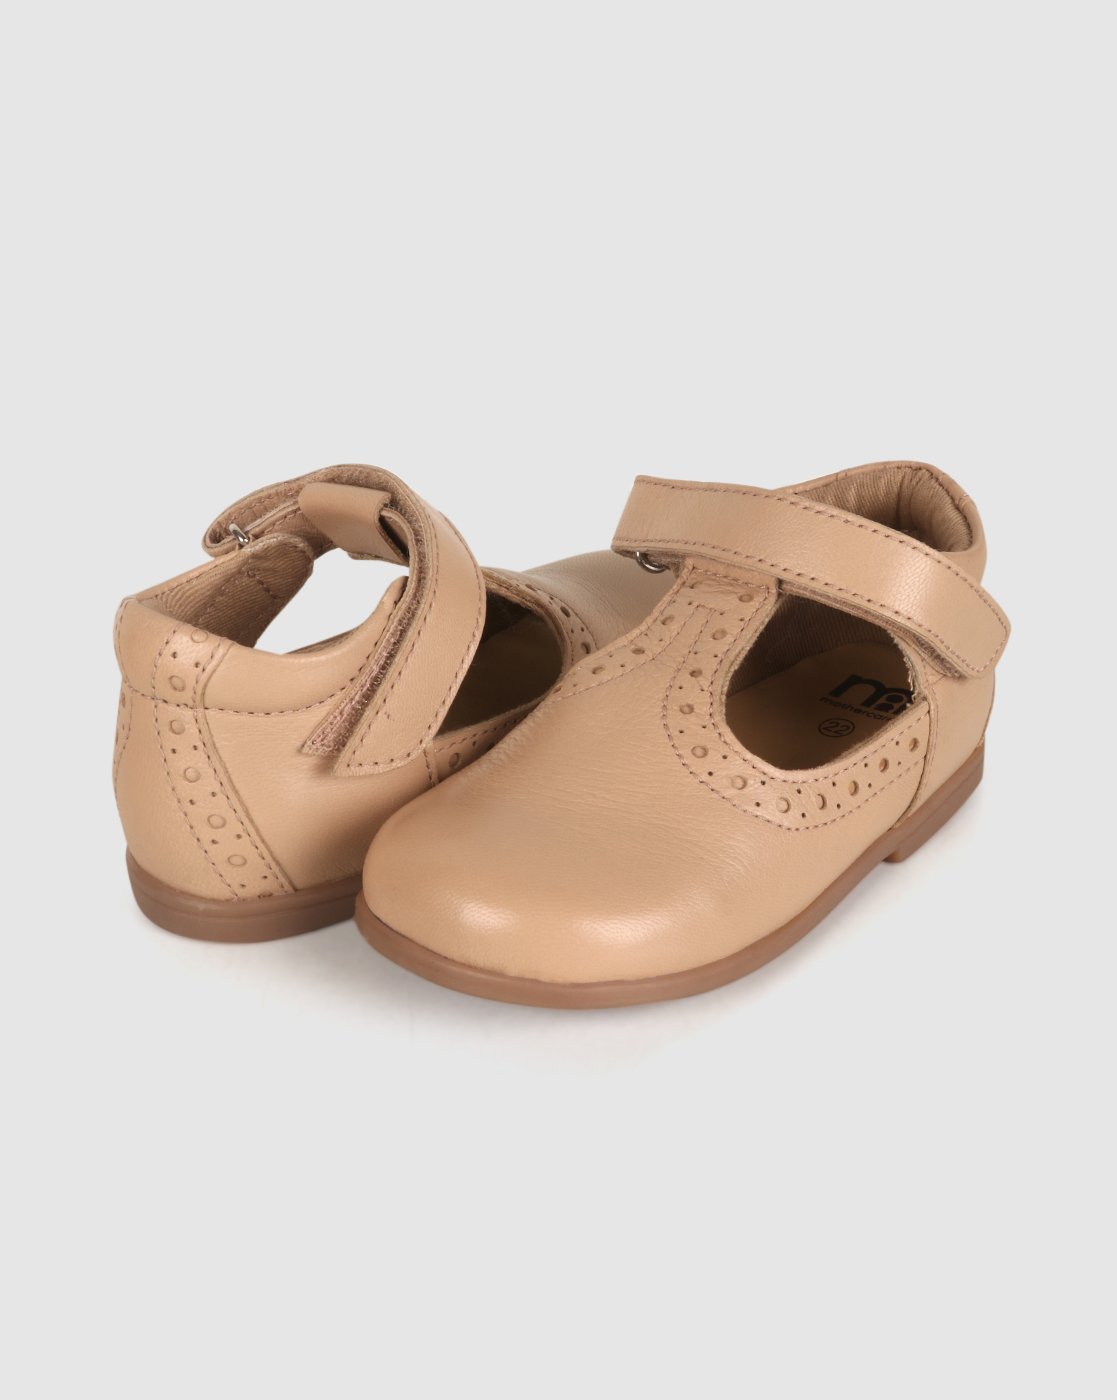 Mothercare | Girls First Walker Shoes Cut Out Design - Ivory